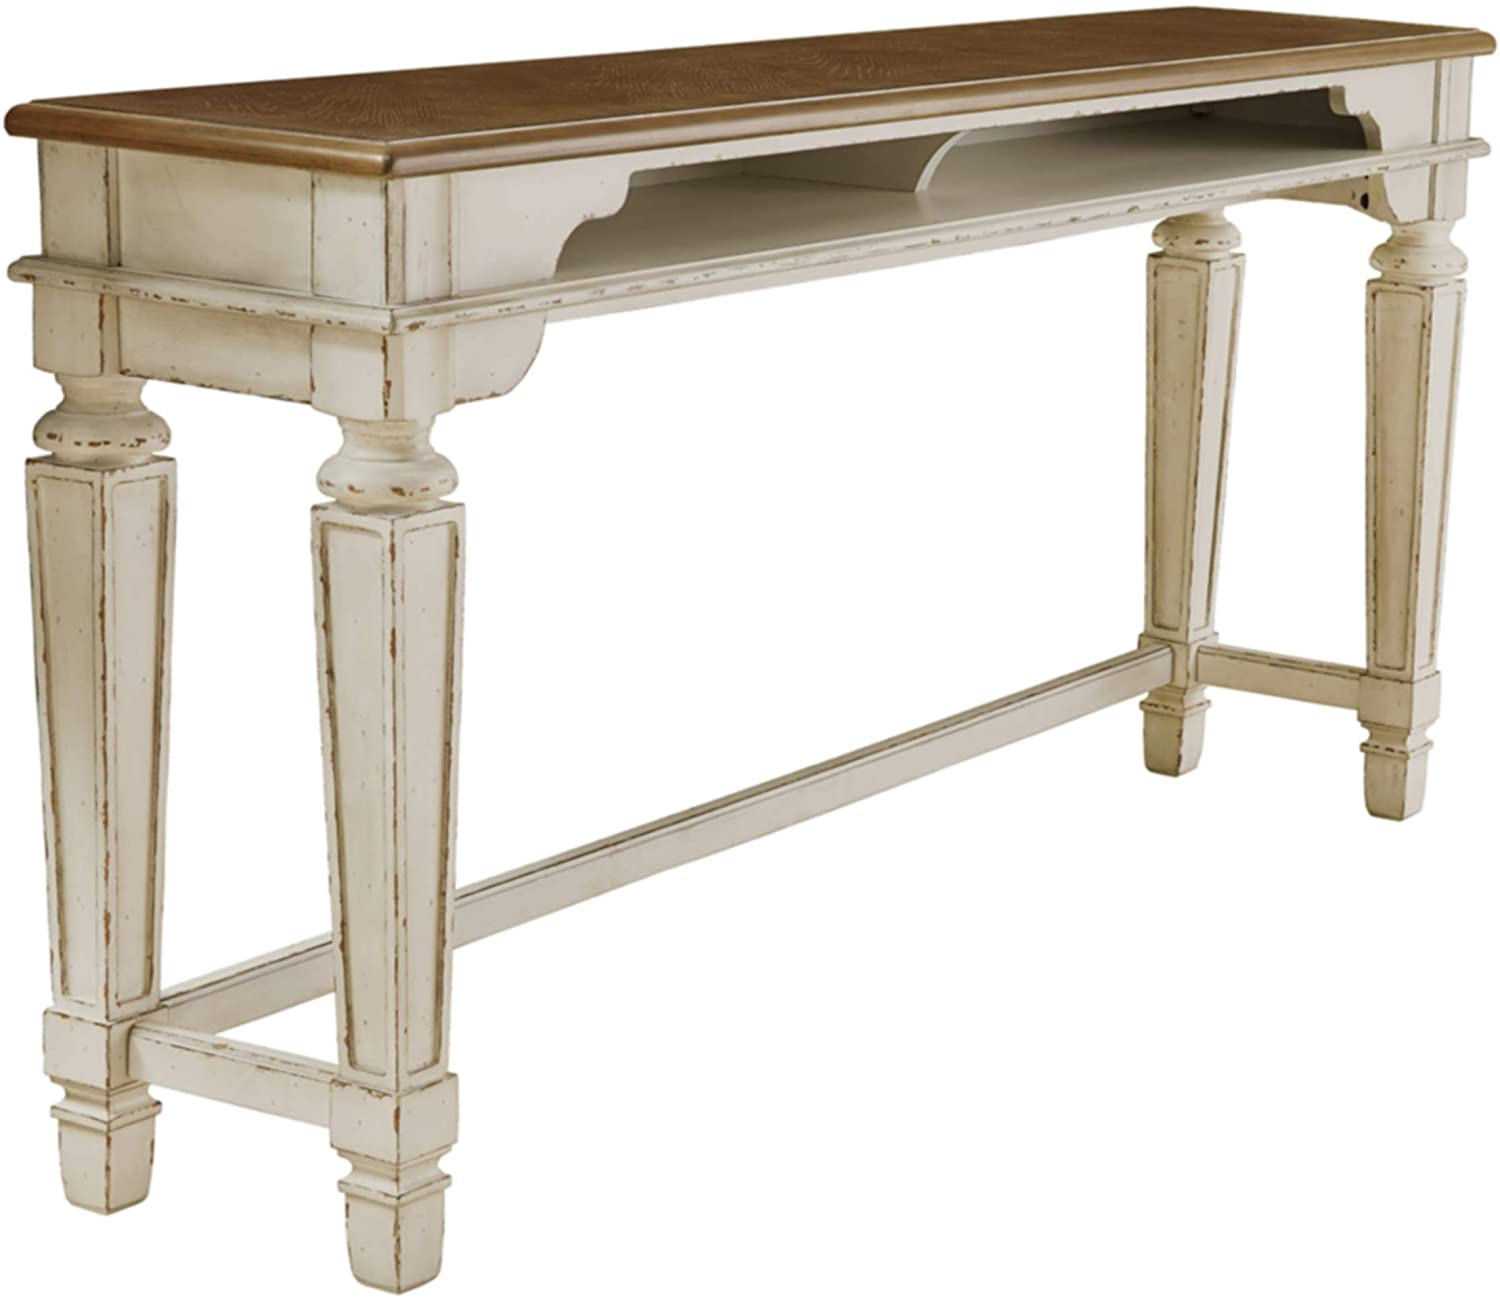 Signature Design by Ashley D743-52 Realyn Dining Table, White